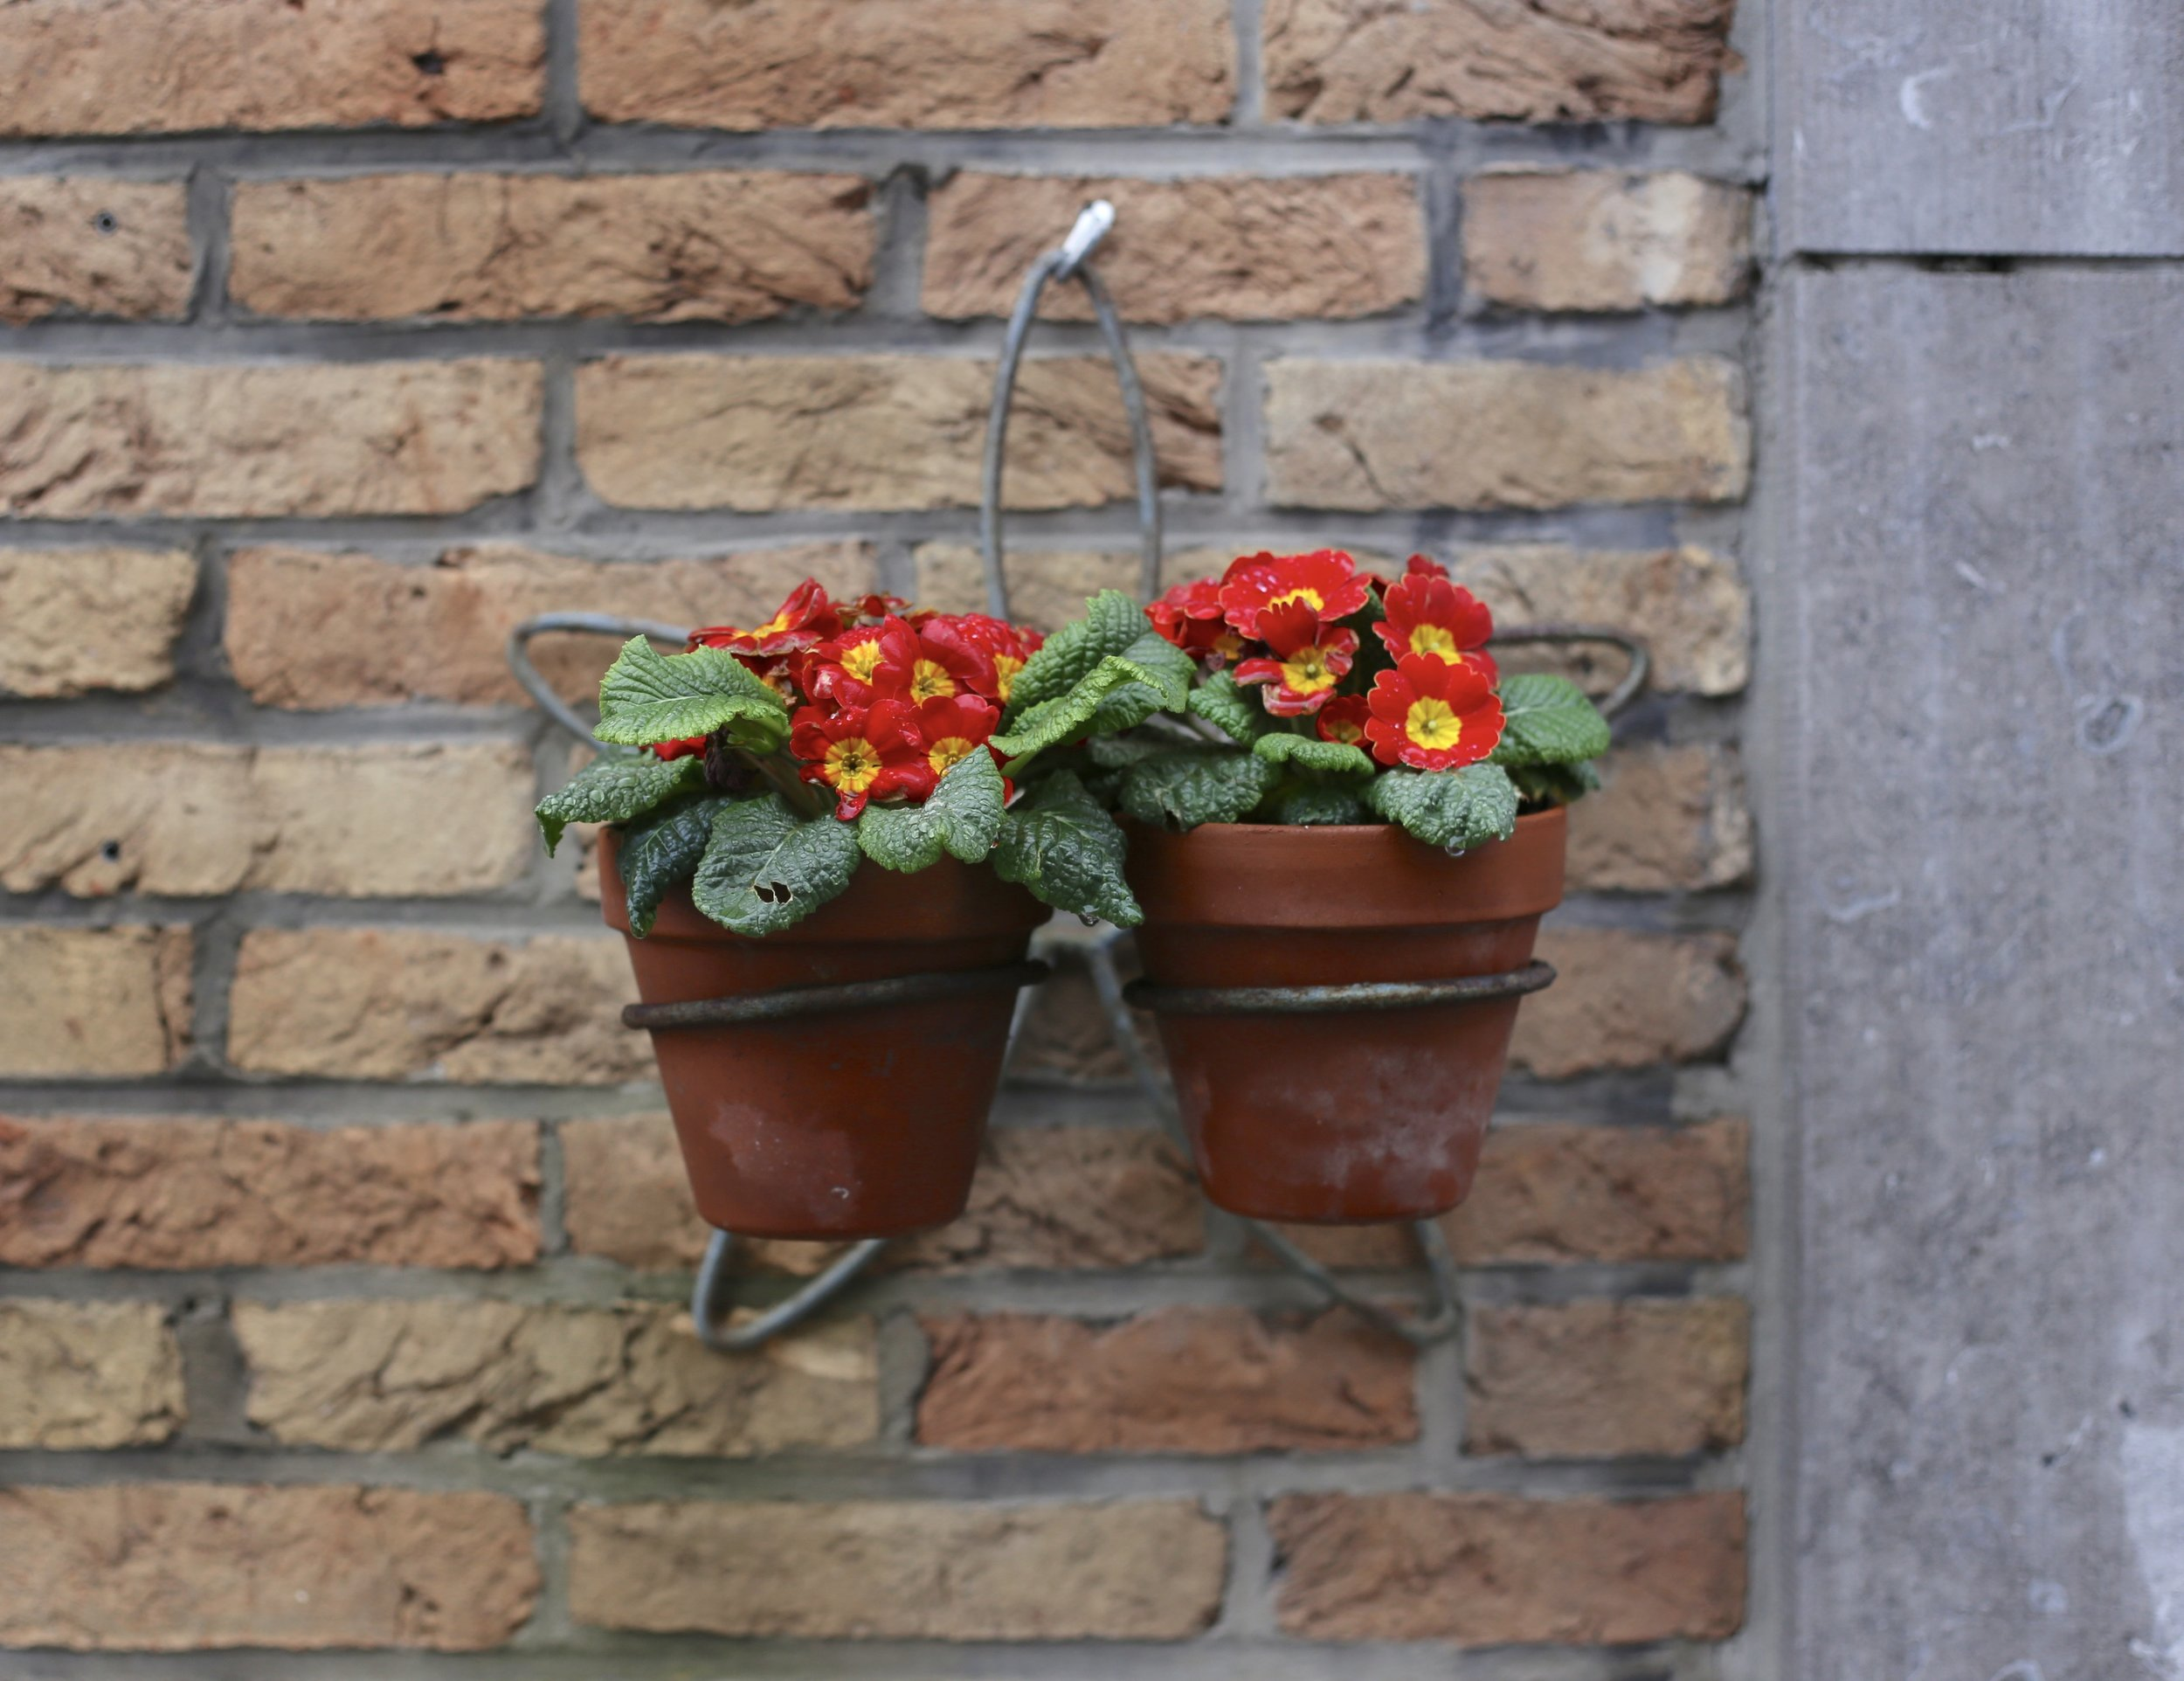 Primroses in pots hung on a brick wall.